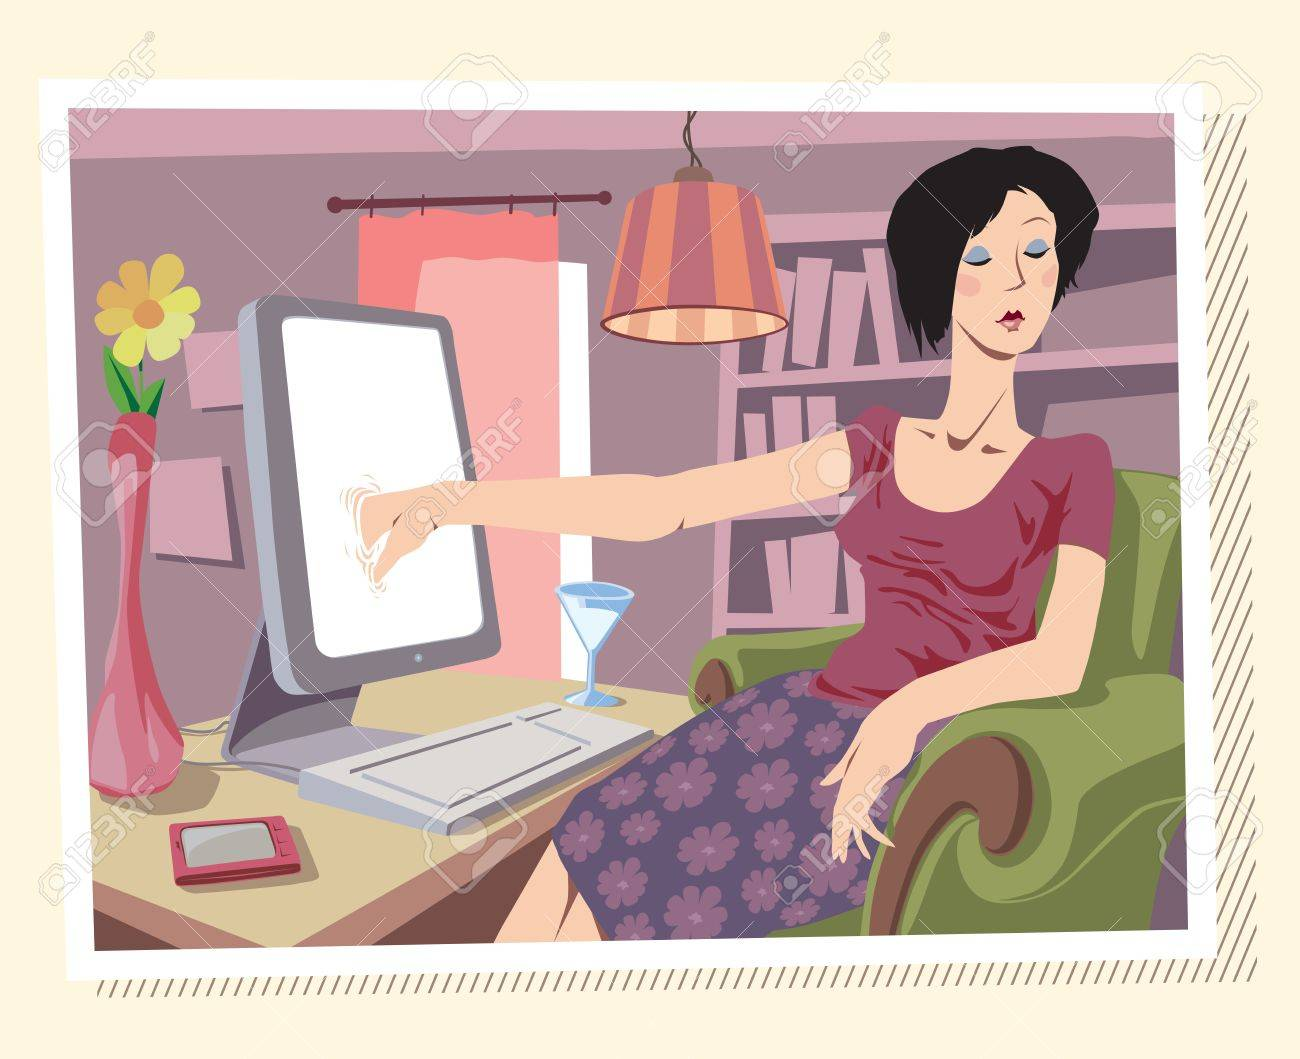 Woman is browsing the Internet or searching something on her local drives (I really don't know ;)) Stock Vector - 10222403